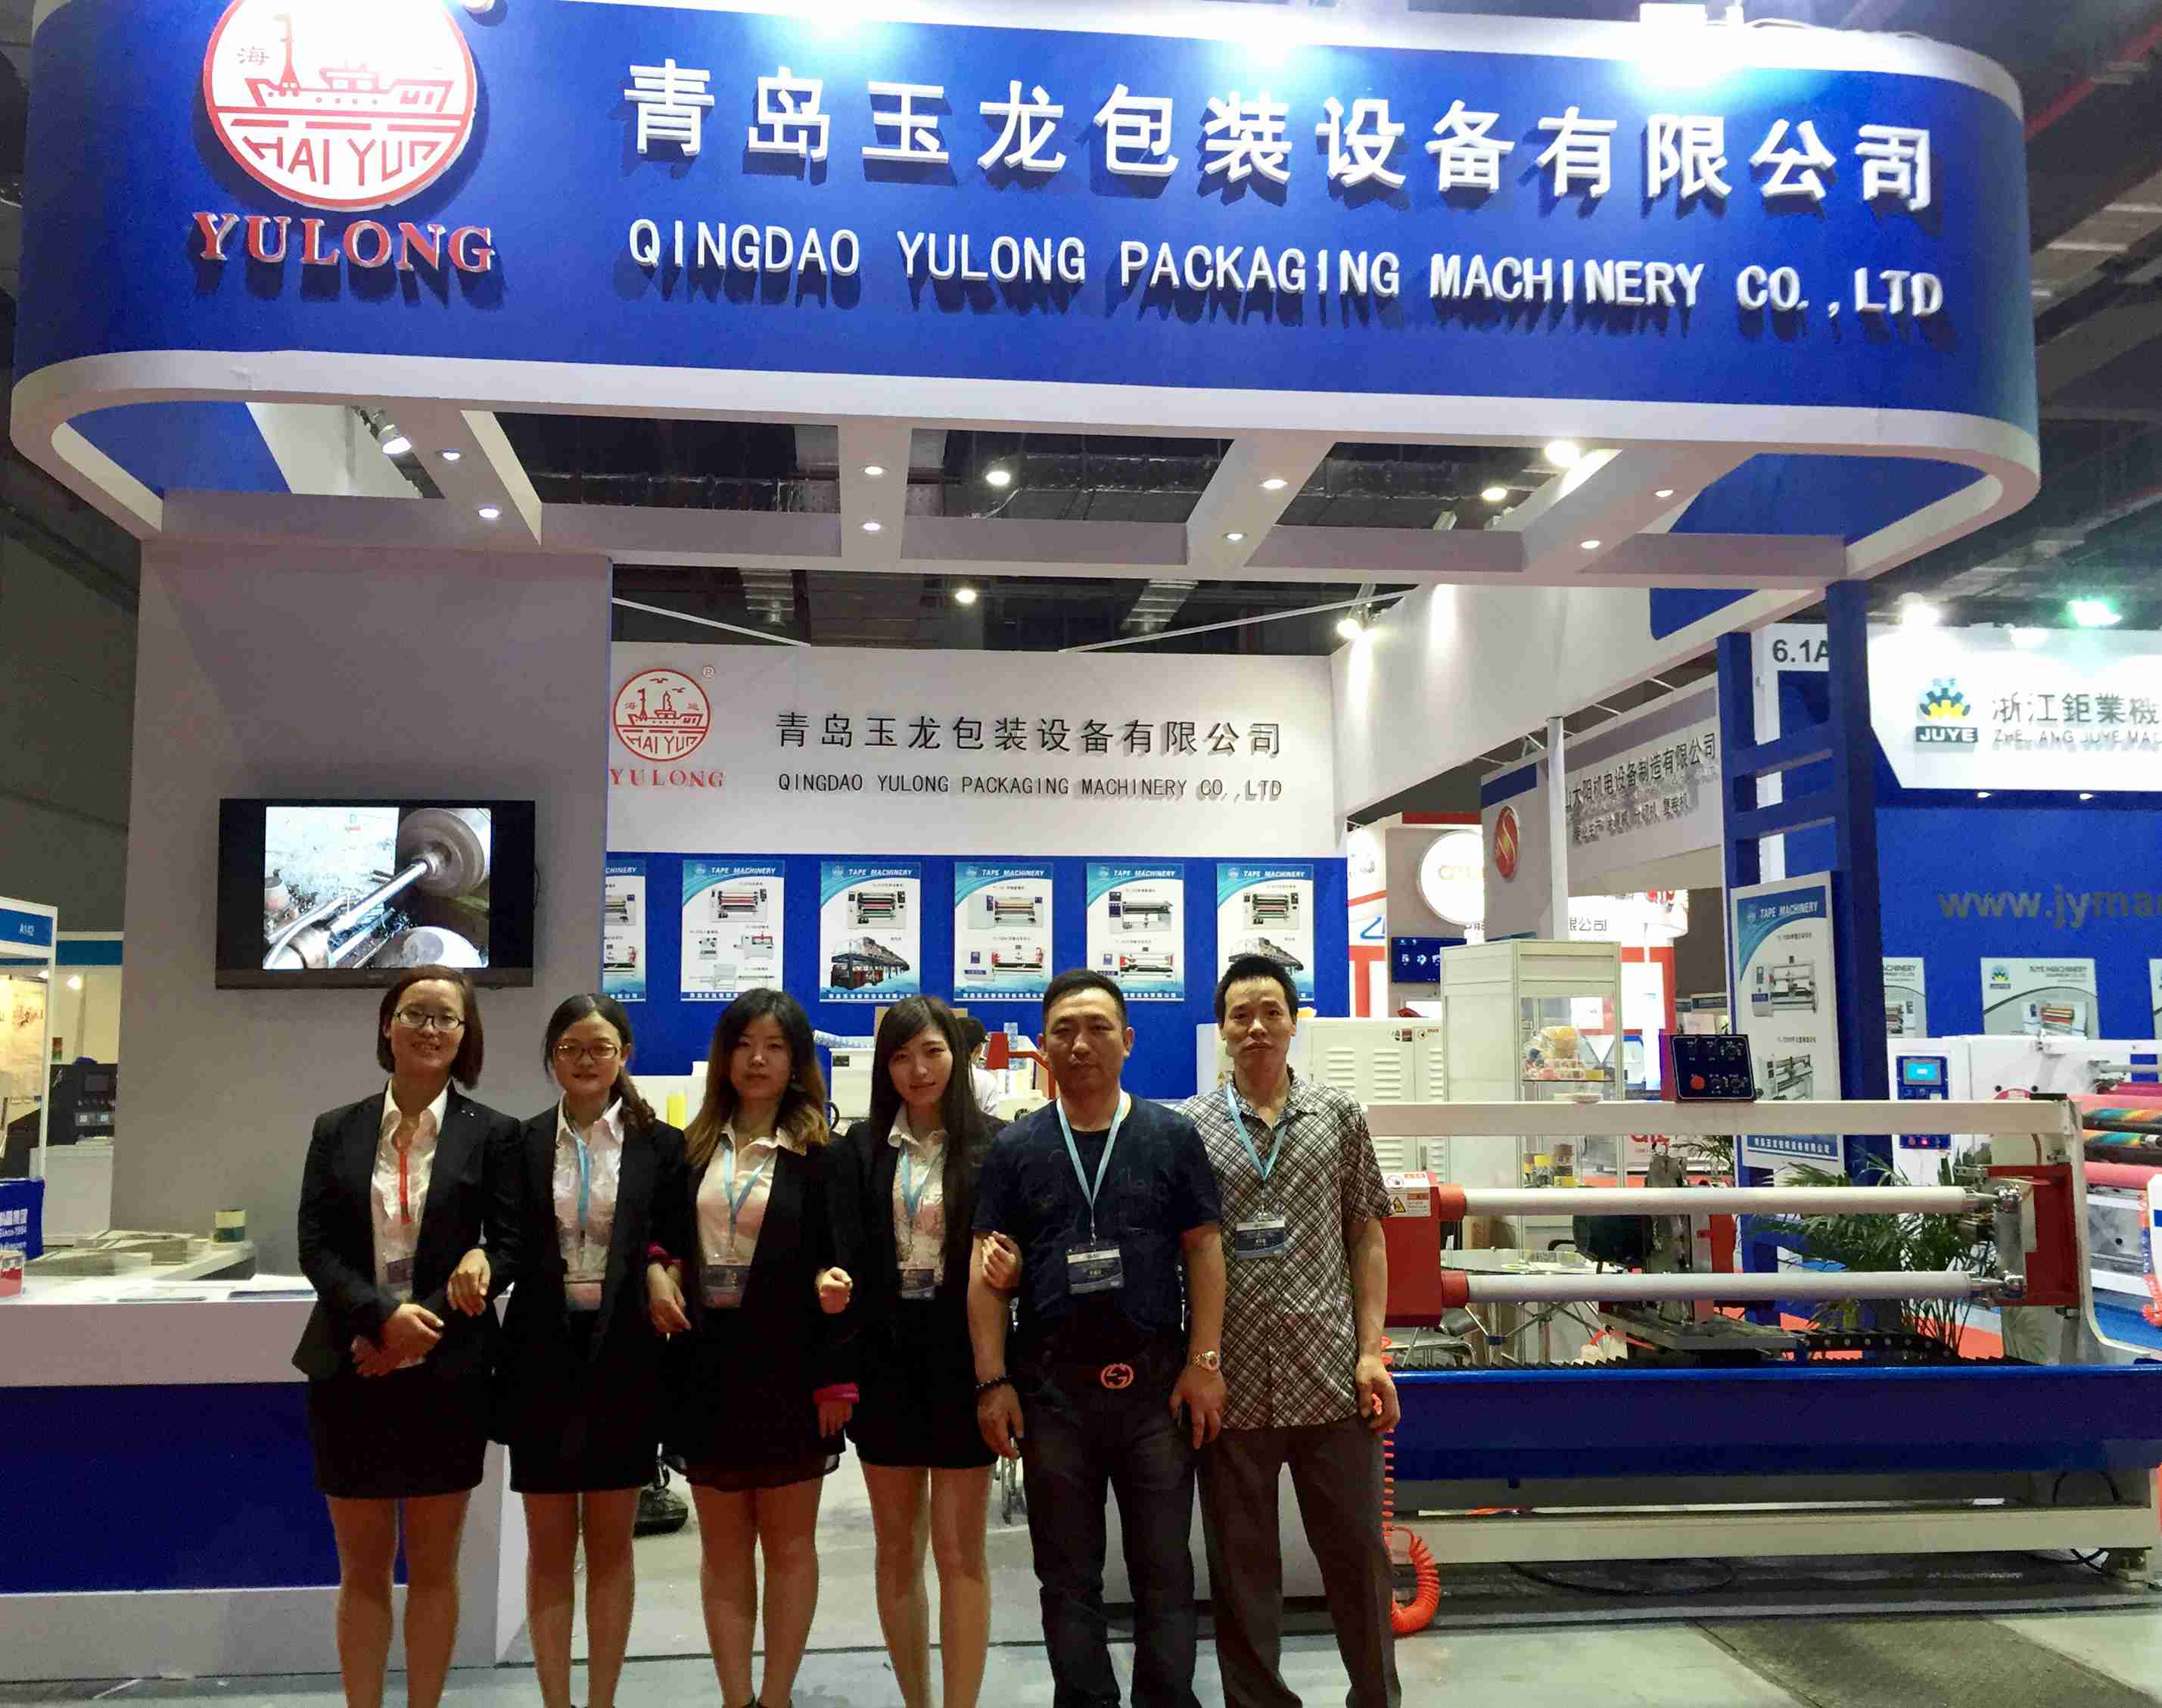 2015 SHANGHAI EXHIBITION